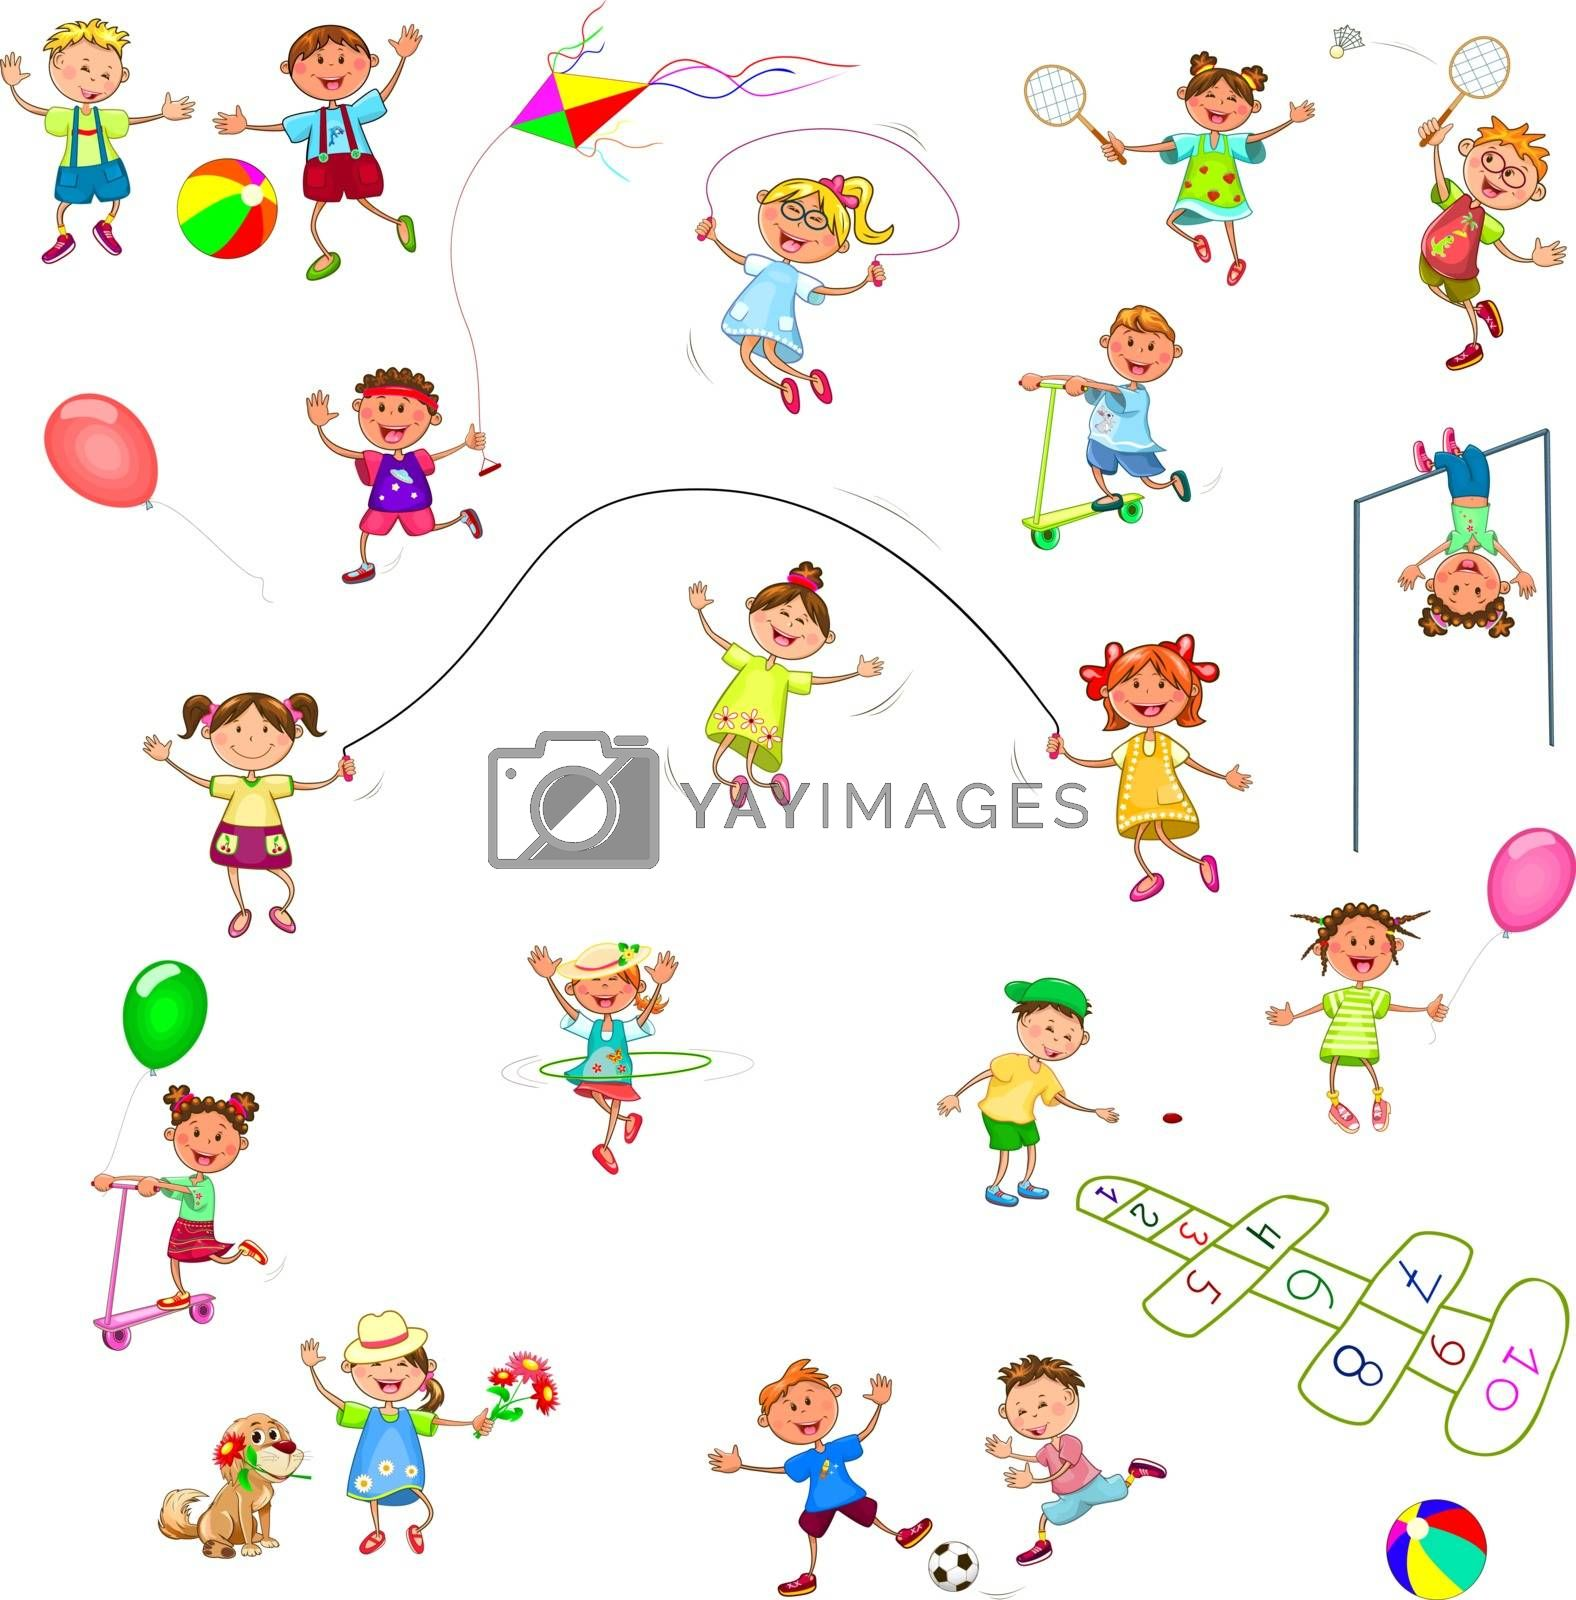 Joyful little children on a walk. Cheerful, smiling children play various games. Group of happy, smiling children.